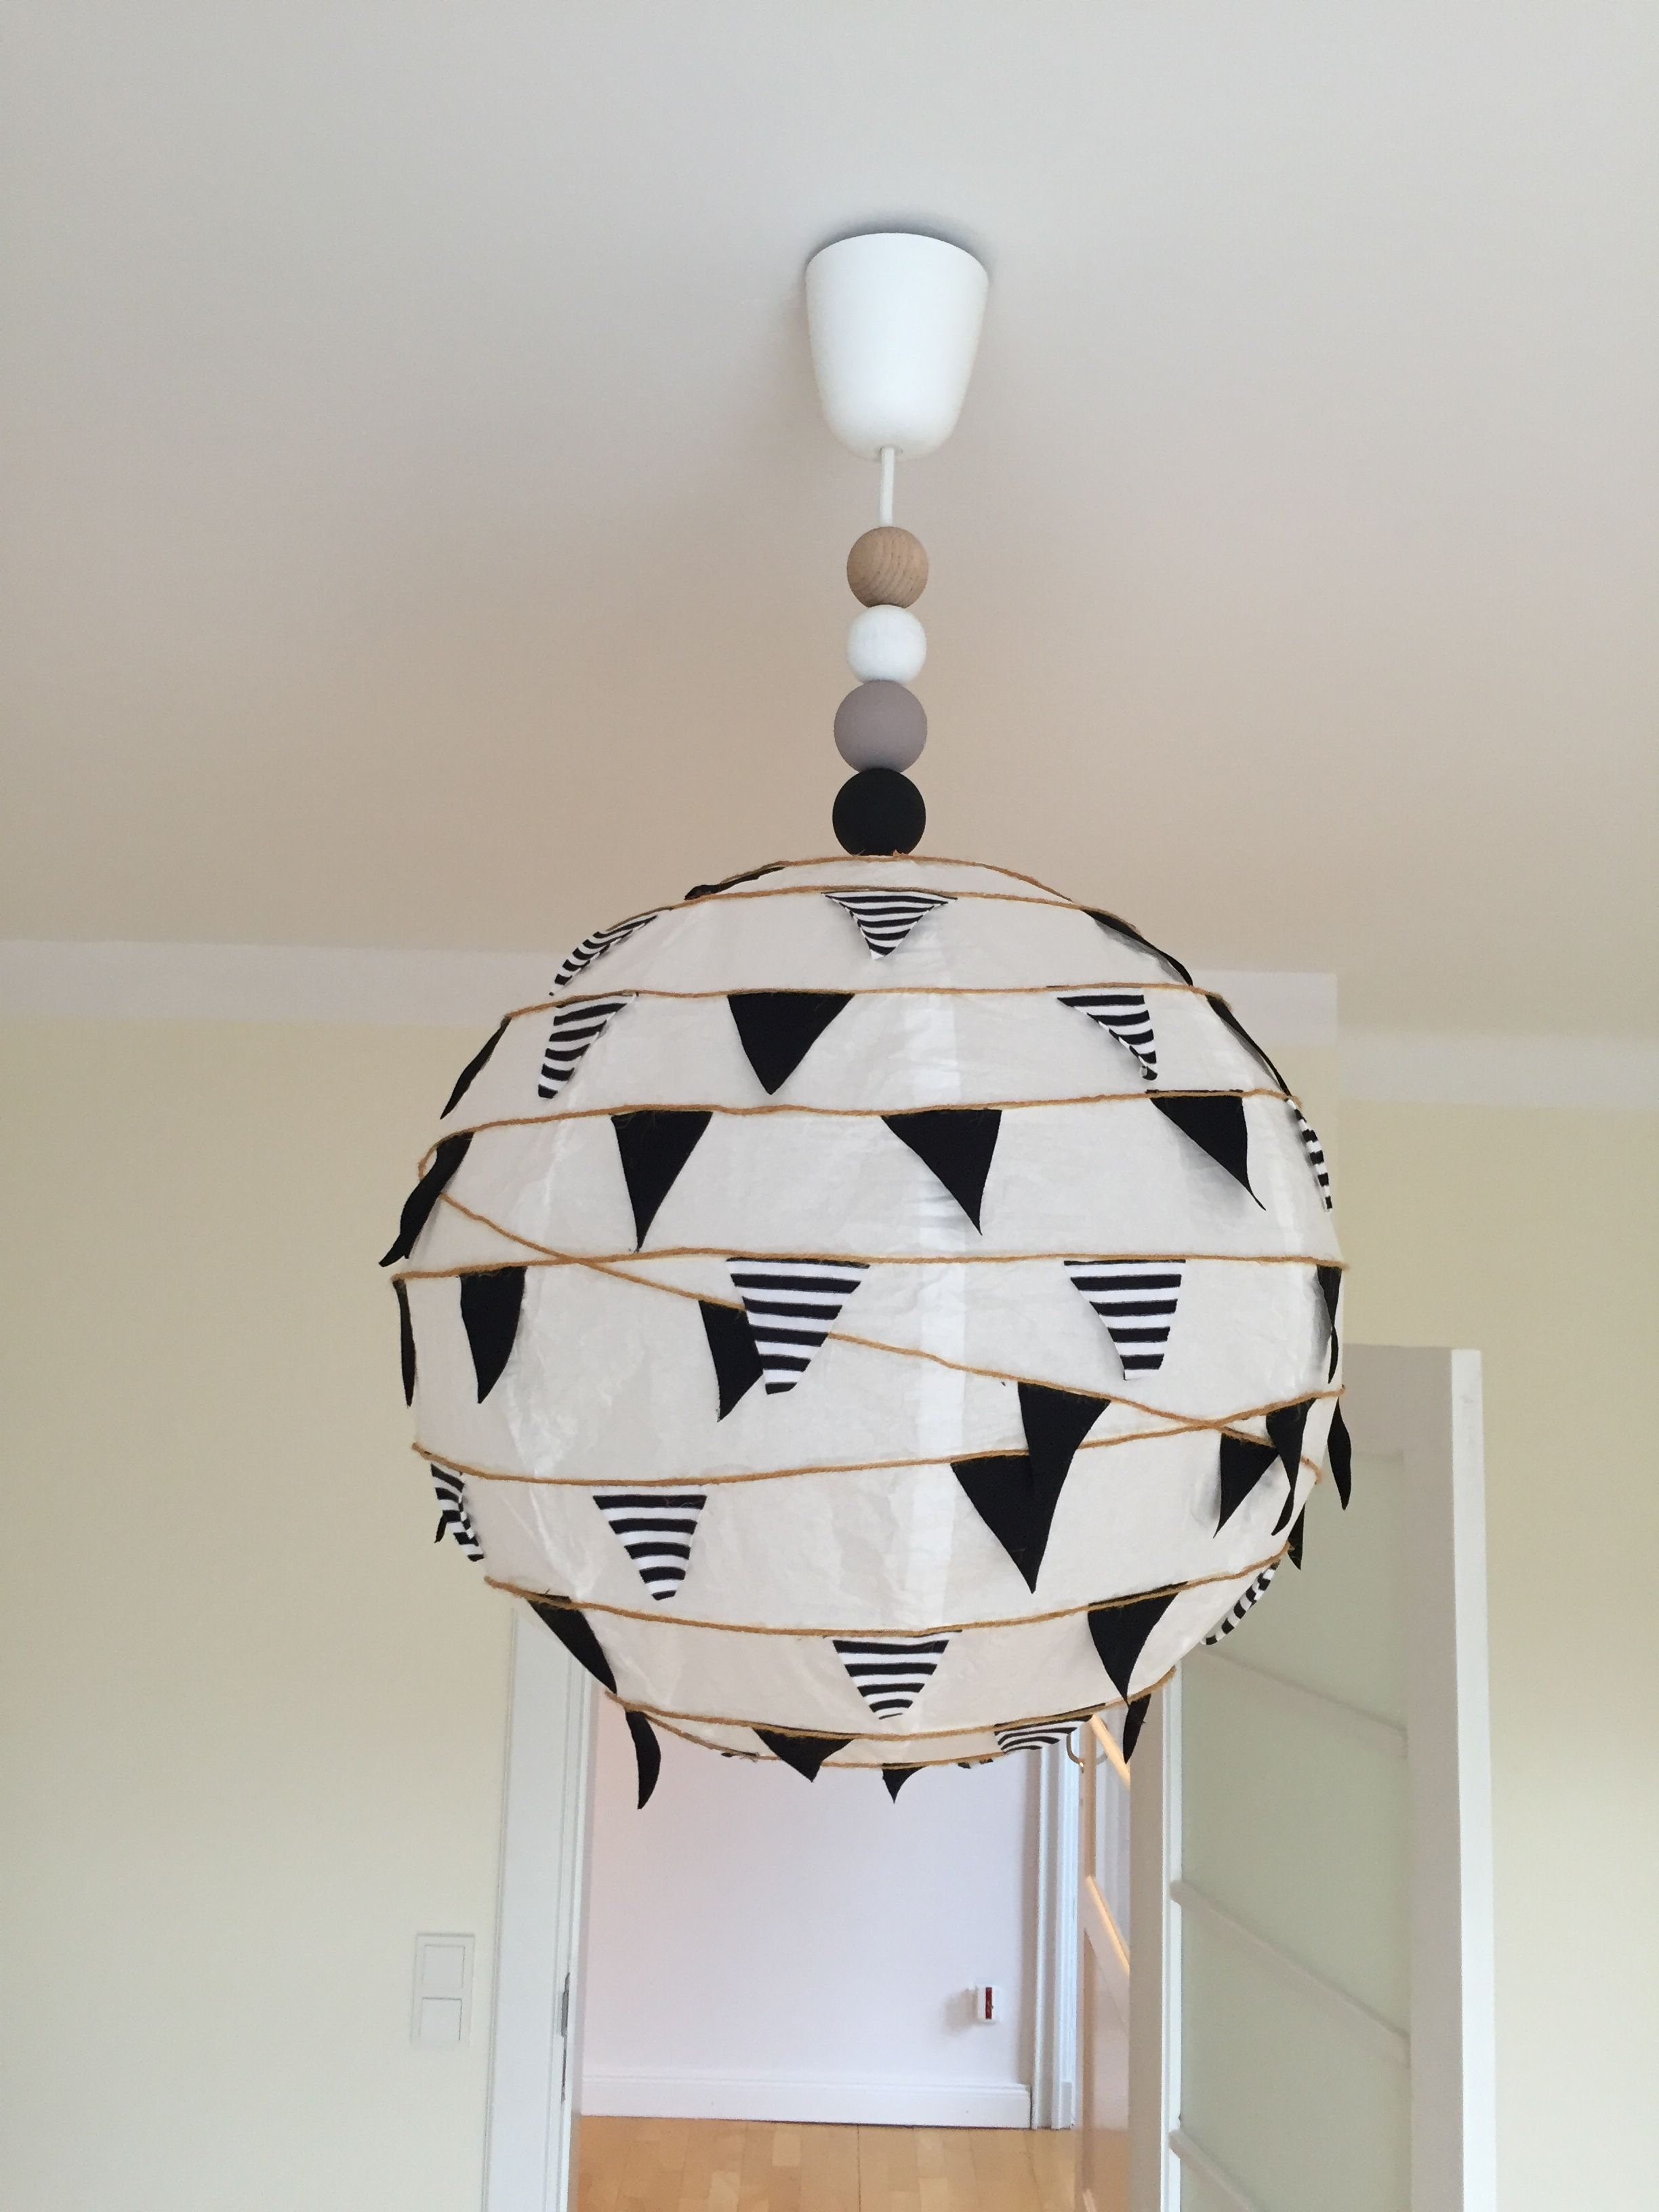 Ikea Hack Kinderzimmer Lampe Diy Papierlampe To Make Pinterest